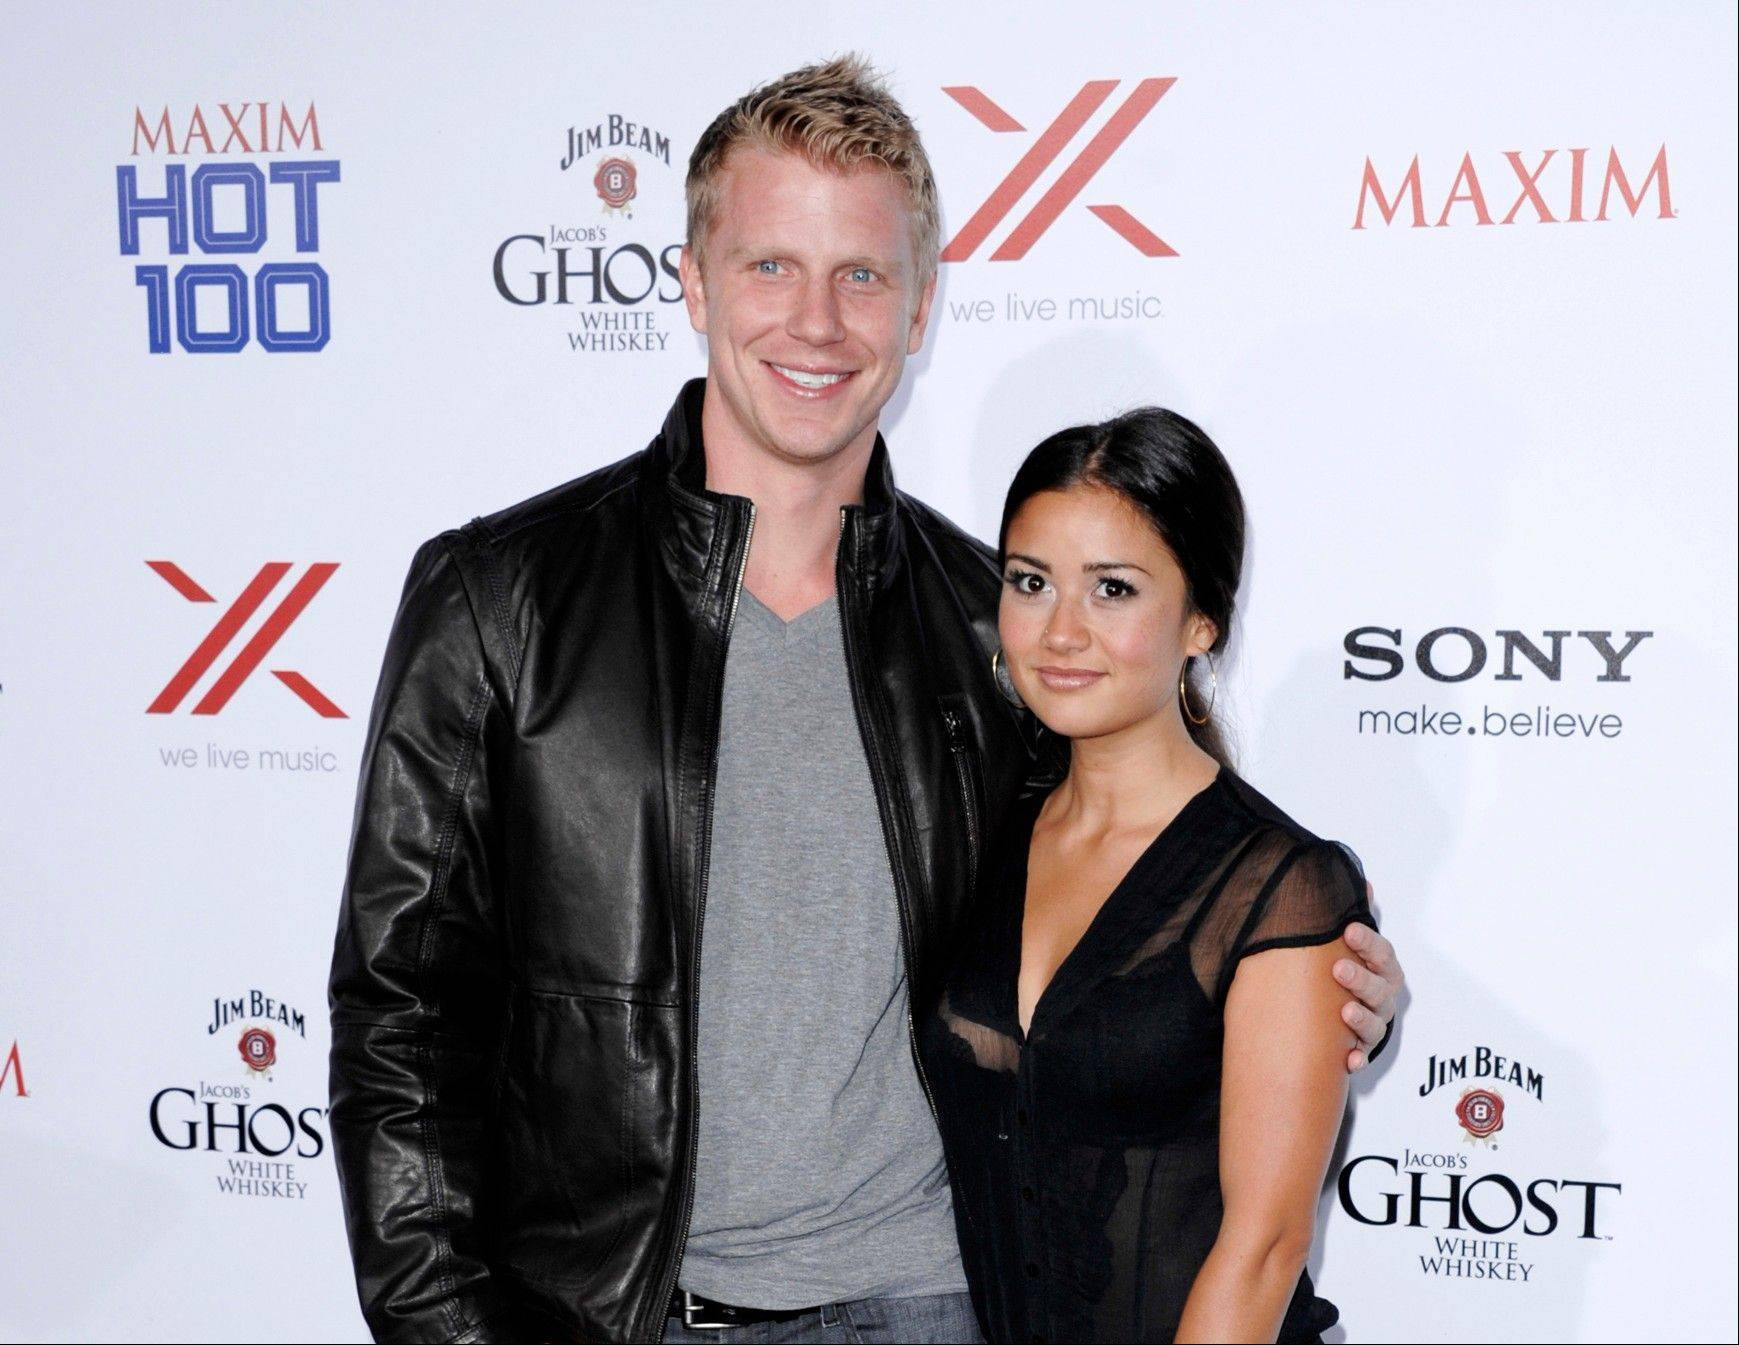 This May 15, 2013 file photo shows TV personalities Sean Lowe, left, and Catherine Giudici from �The Bachelor,� at the 2013 Maxim Hot 100 celebration in Los Angeles. Lowe and Giudici will marry live on ABC on Jan. 26. They made the announcement Monday on �Good Morning America.� Lowe was named the franchise�s 17th bachelor. �The Bachelor: Sean and Catherine�s Wedding� will be hosted by Chris Harrison.